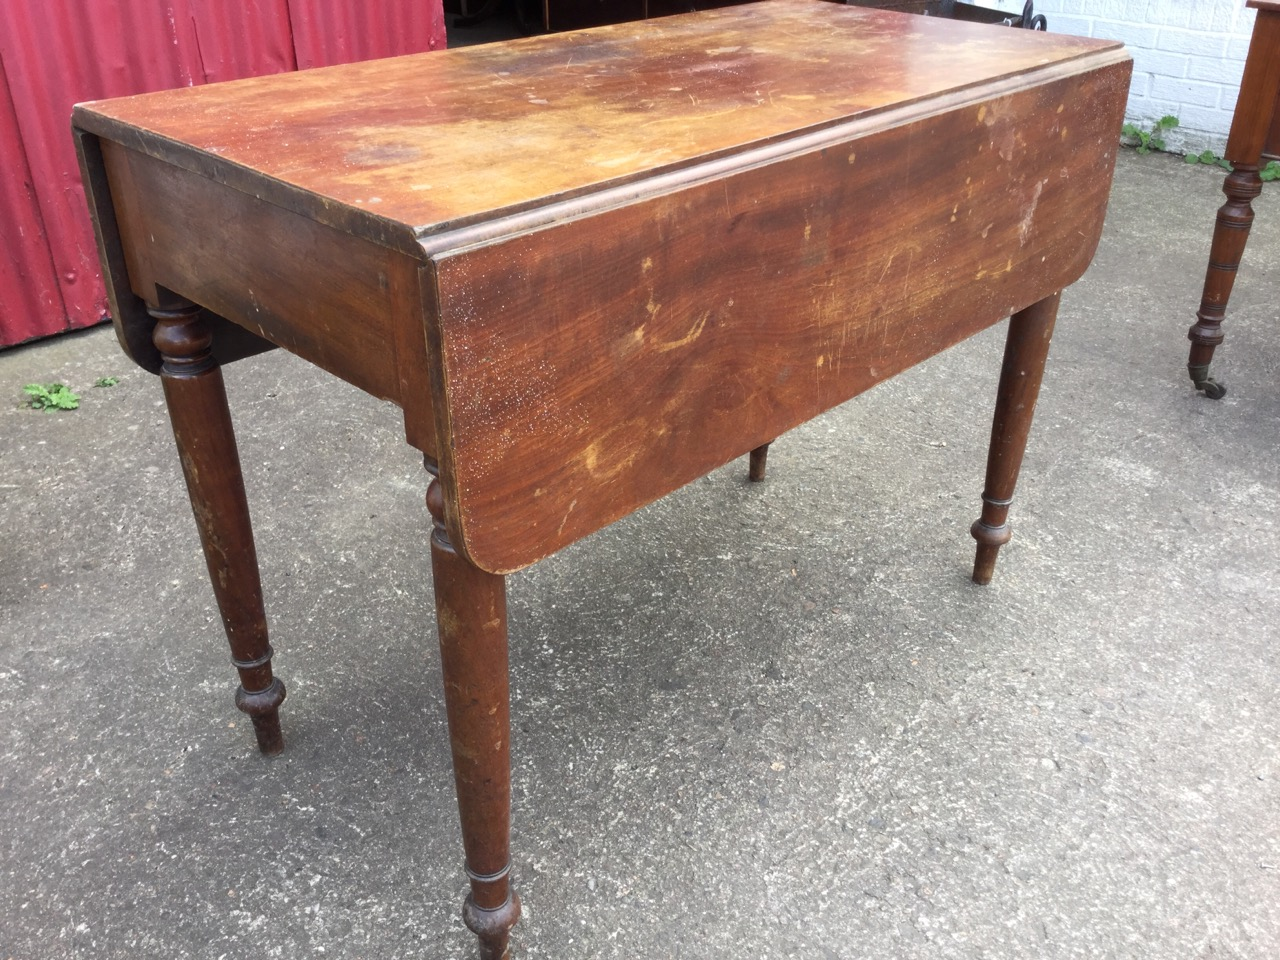 Lot 2 - A Victorian mahogany pembroke table with two rounded drop leaves and frieze drawer, raised on turned